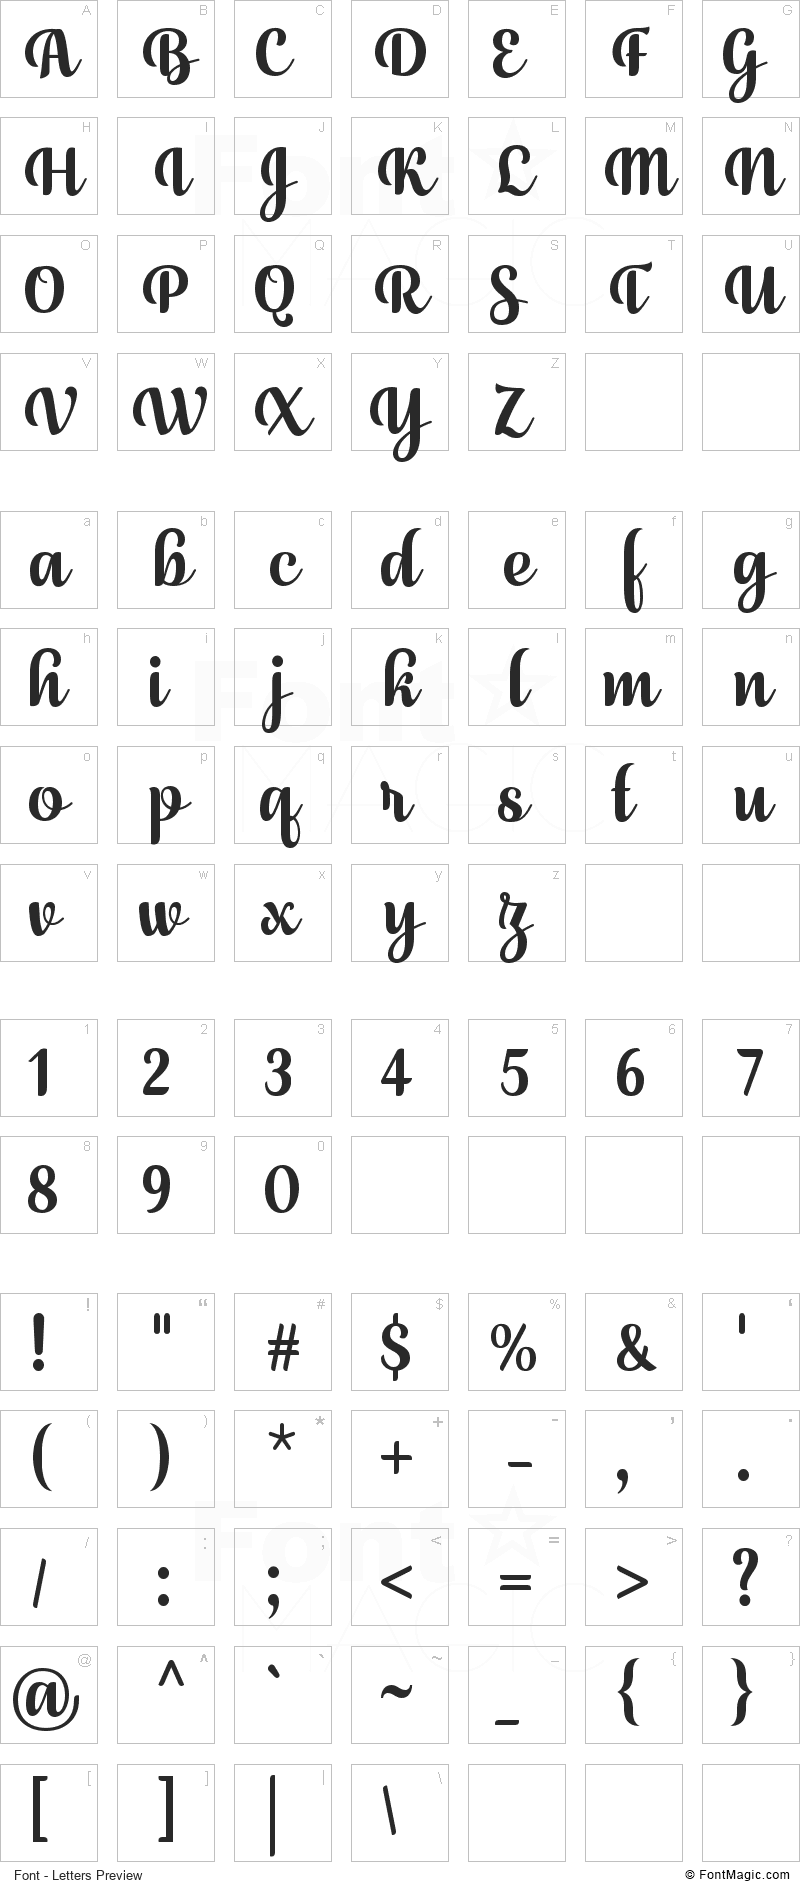 July Seventh Font - All Latters Preview Chart